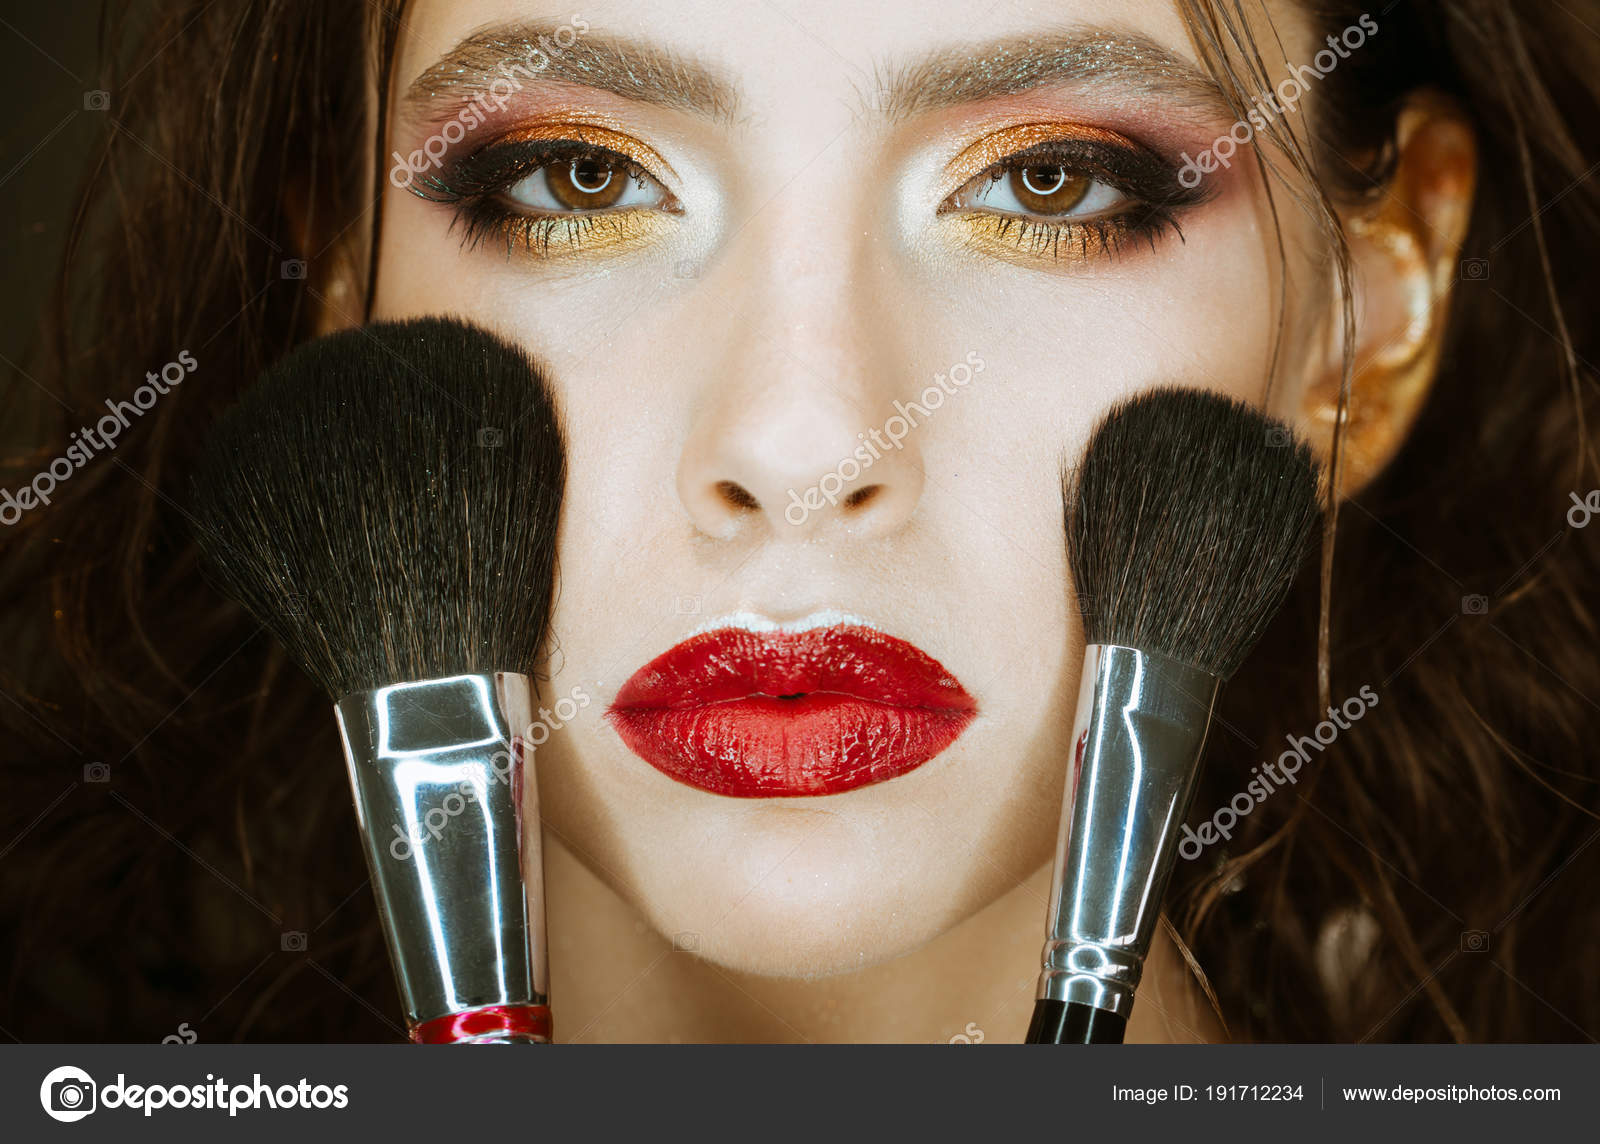 Girl With Makeup Brushes Apply Powder On Face Cosmetics Girl With Art Makeup And Red Lips Stock Photo C Tverdohlib Com 191712234